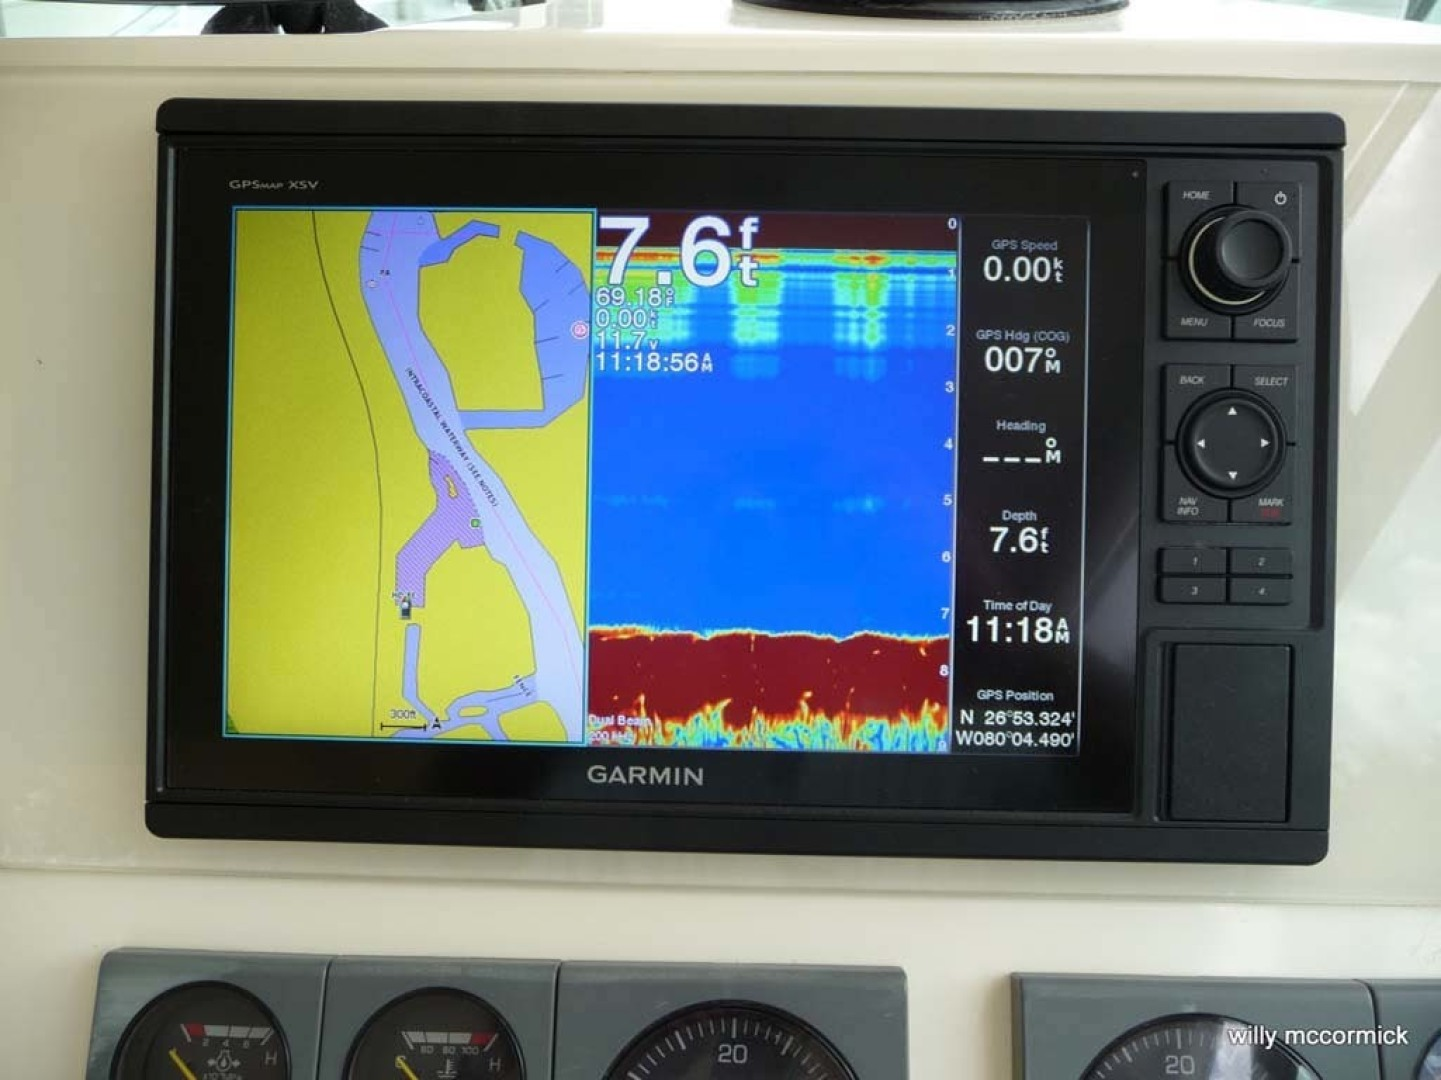 Sabre-36 Express Cruiser 2001-Cause We Can Palm Beach Gardens-Florida-United States-Garmin-1318577 | Thumbnail